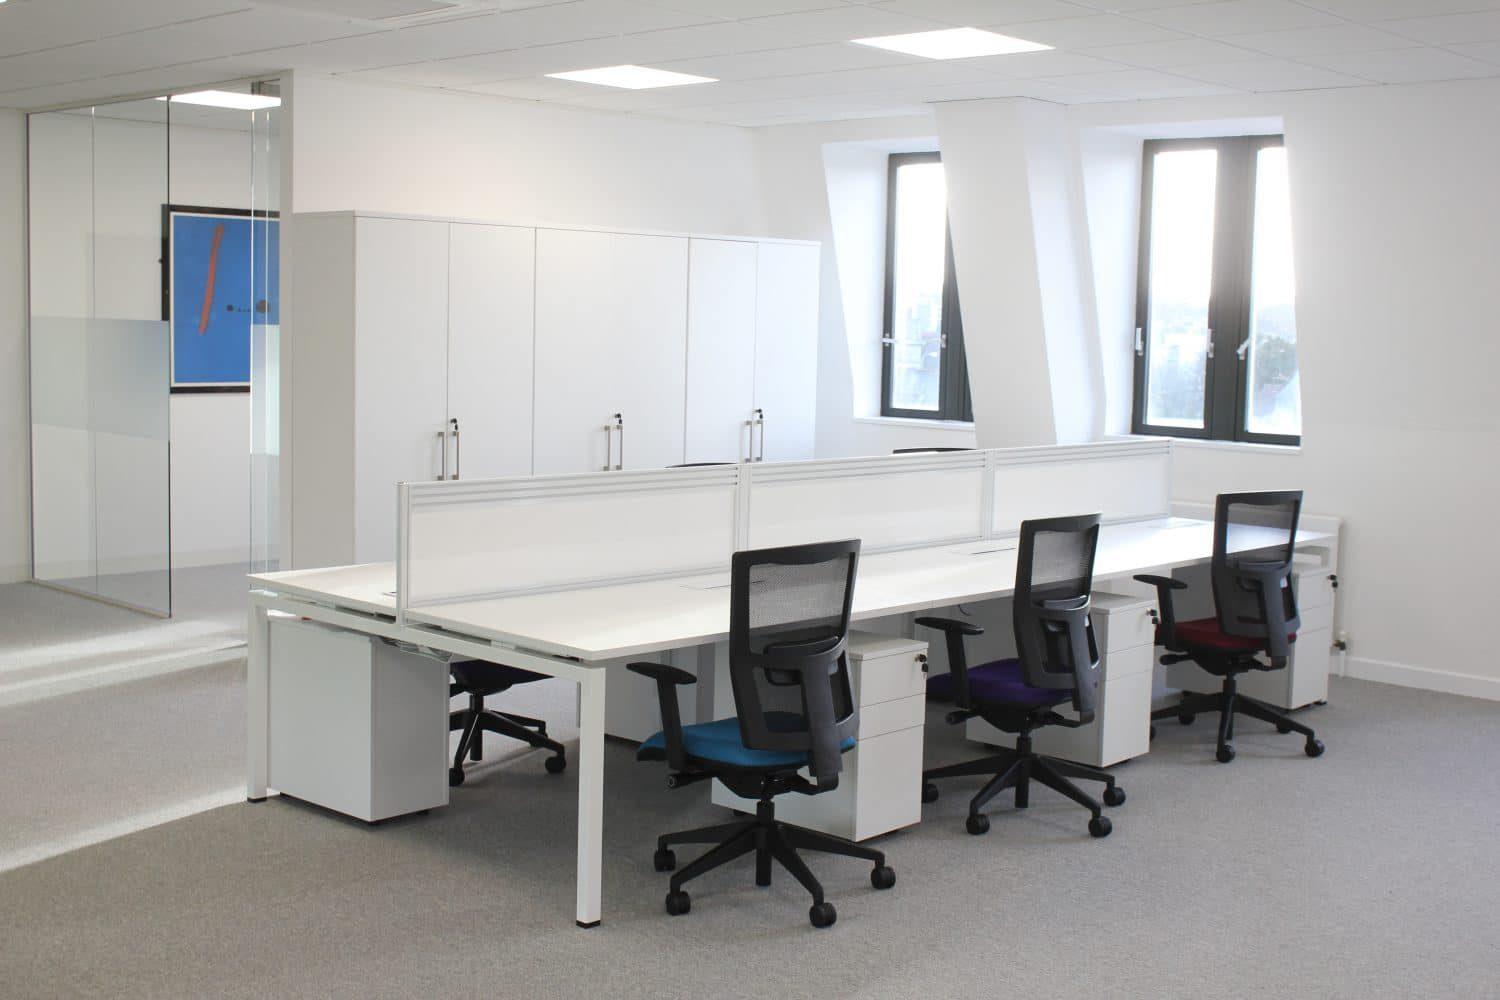 How to ensure office fit-out on a tight budget